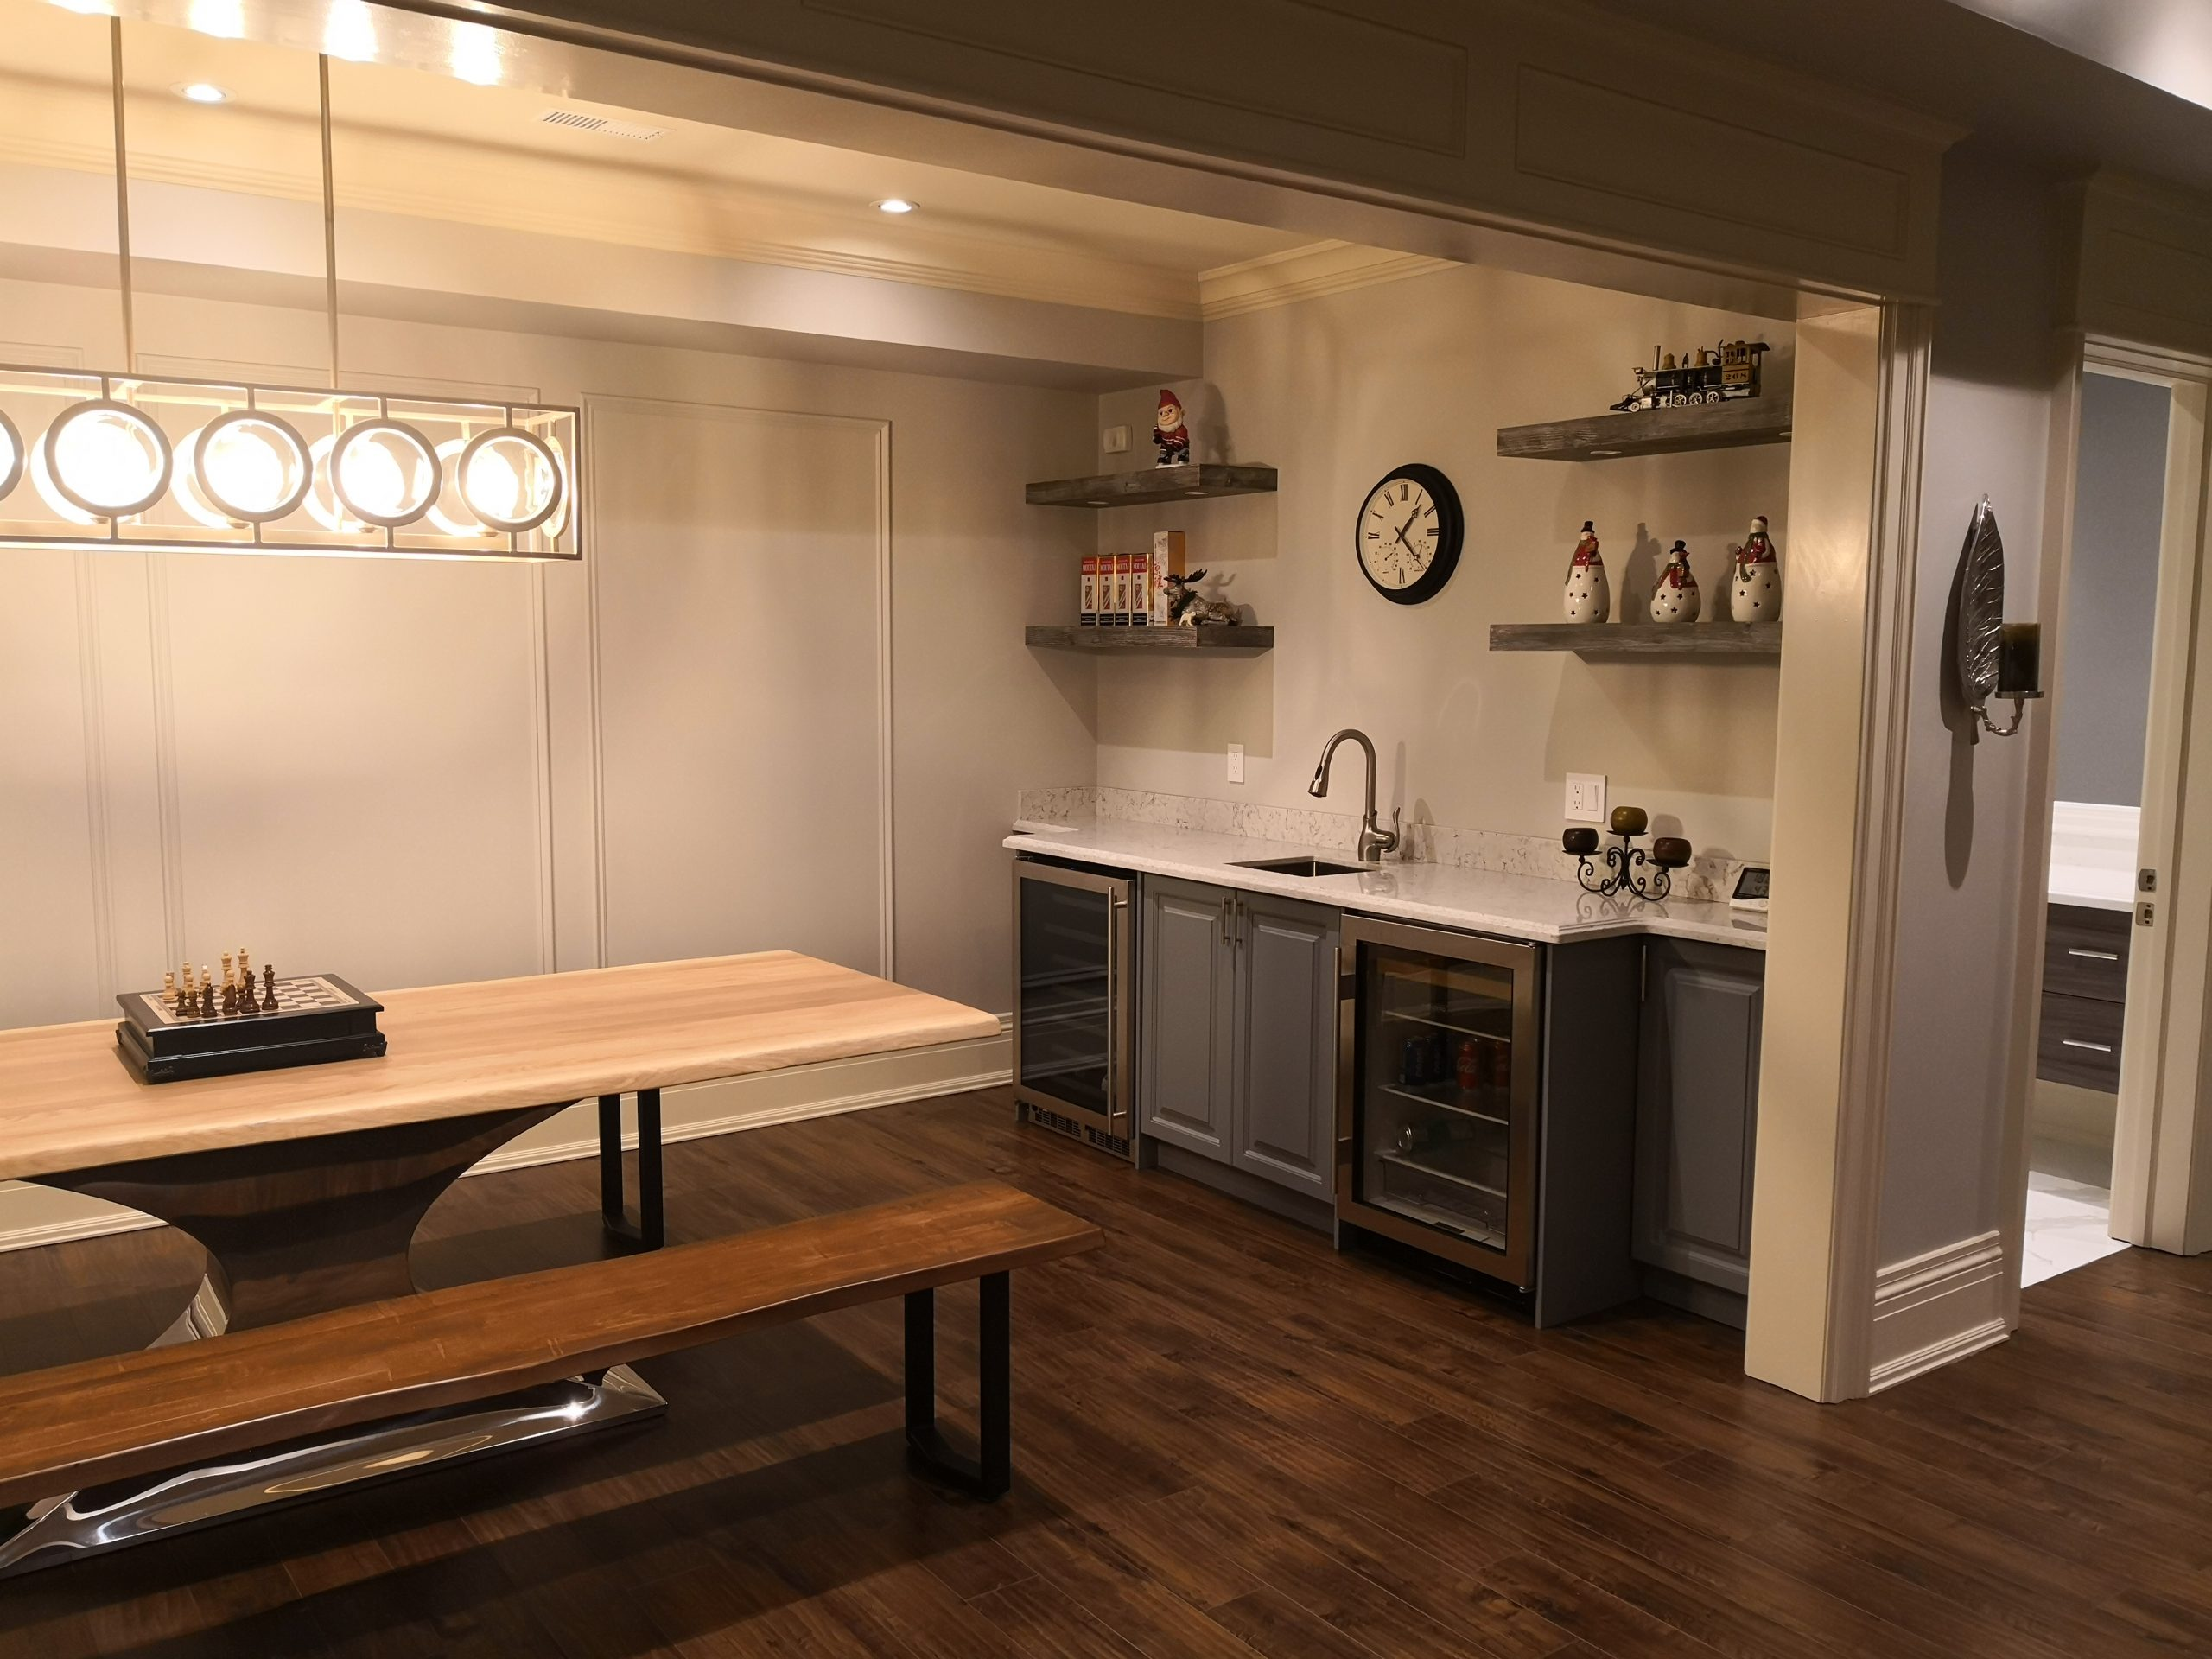 Snack area in renovated basement